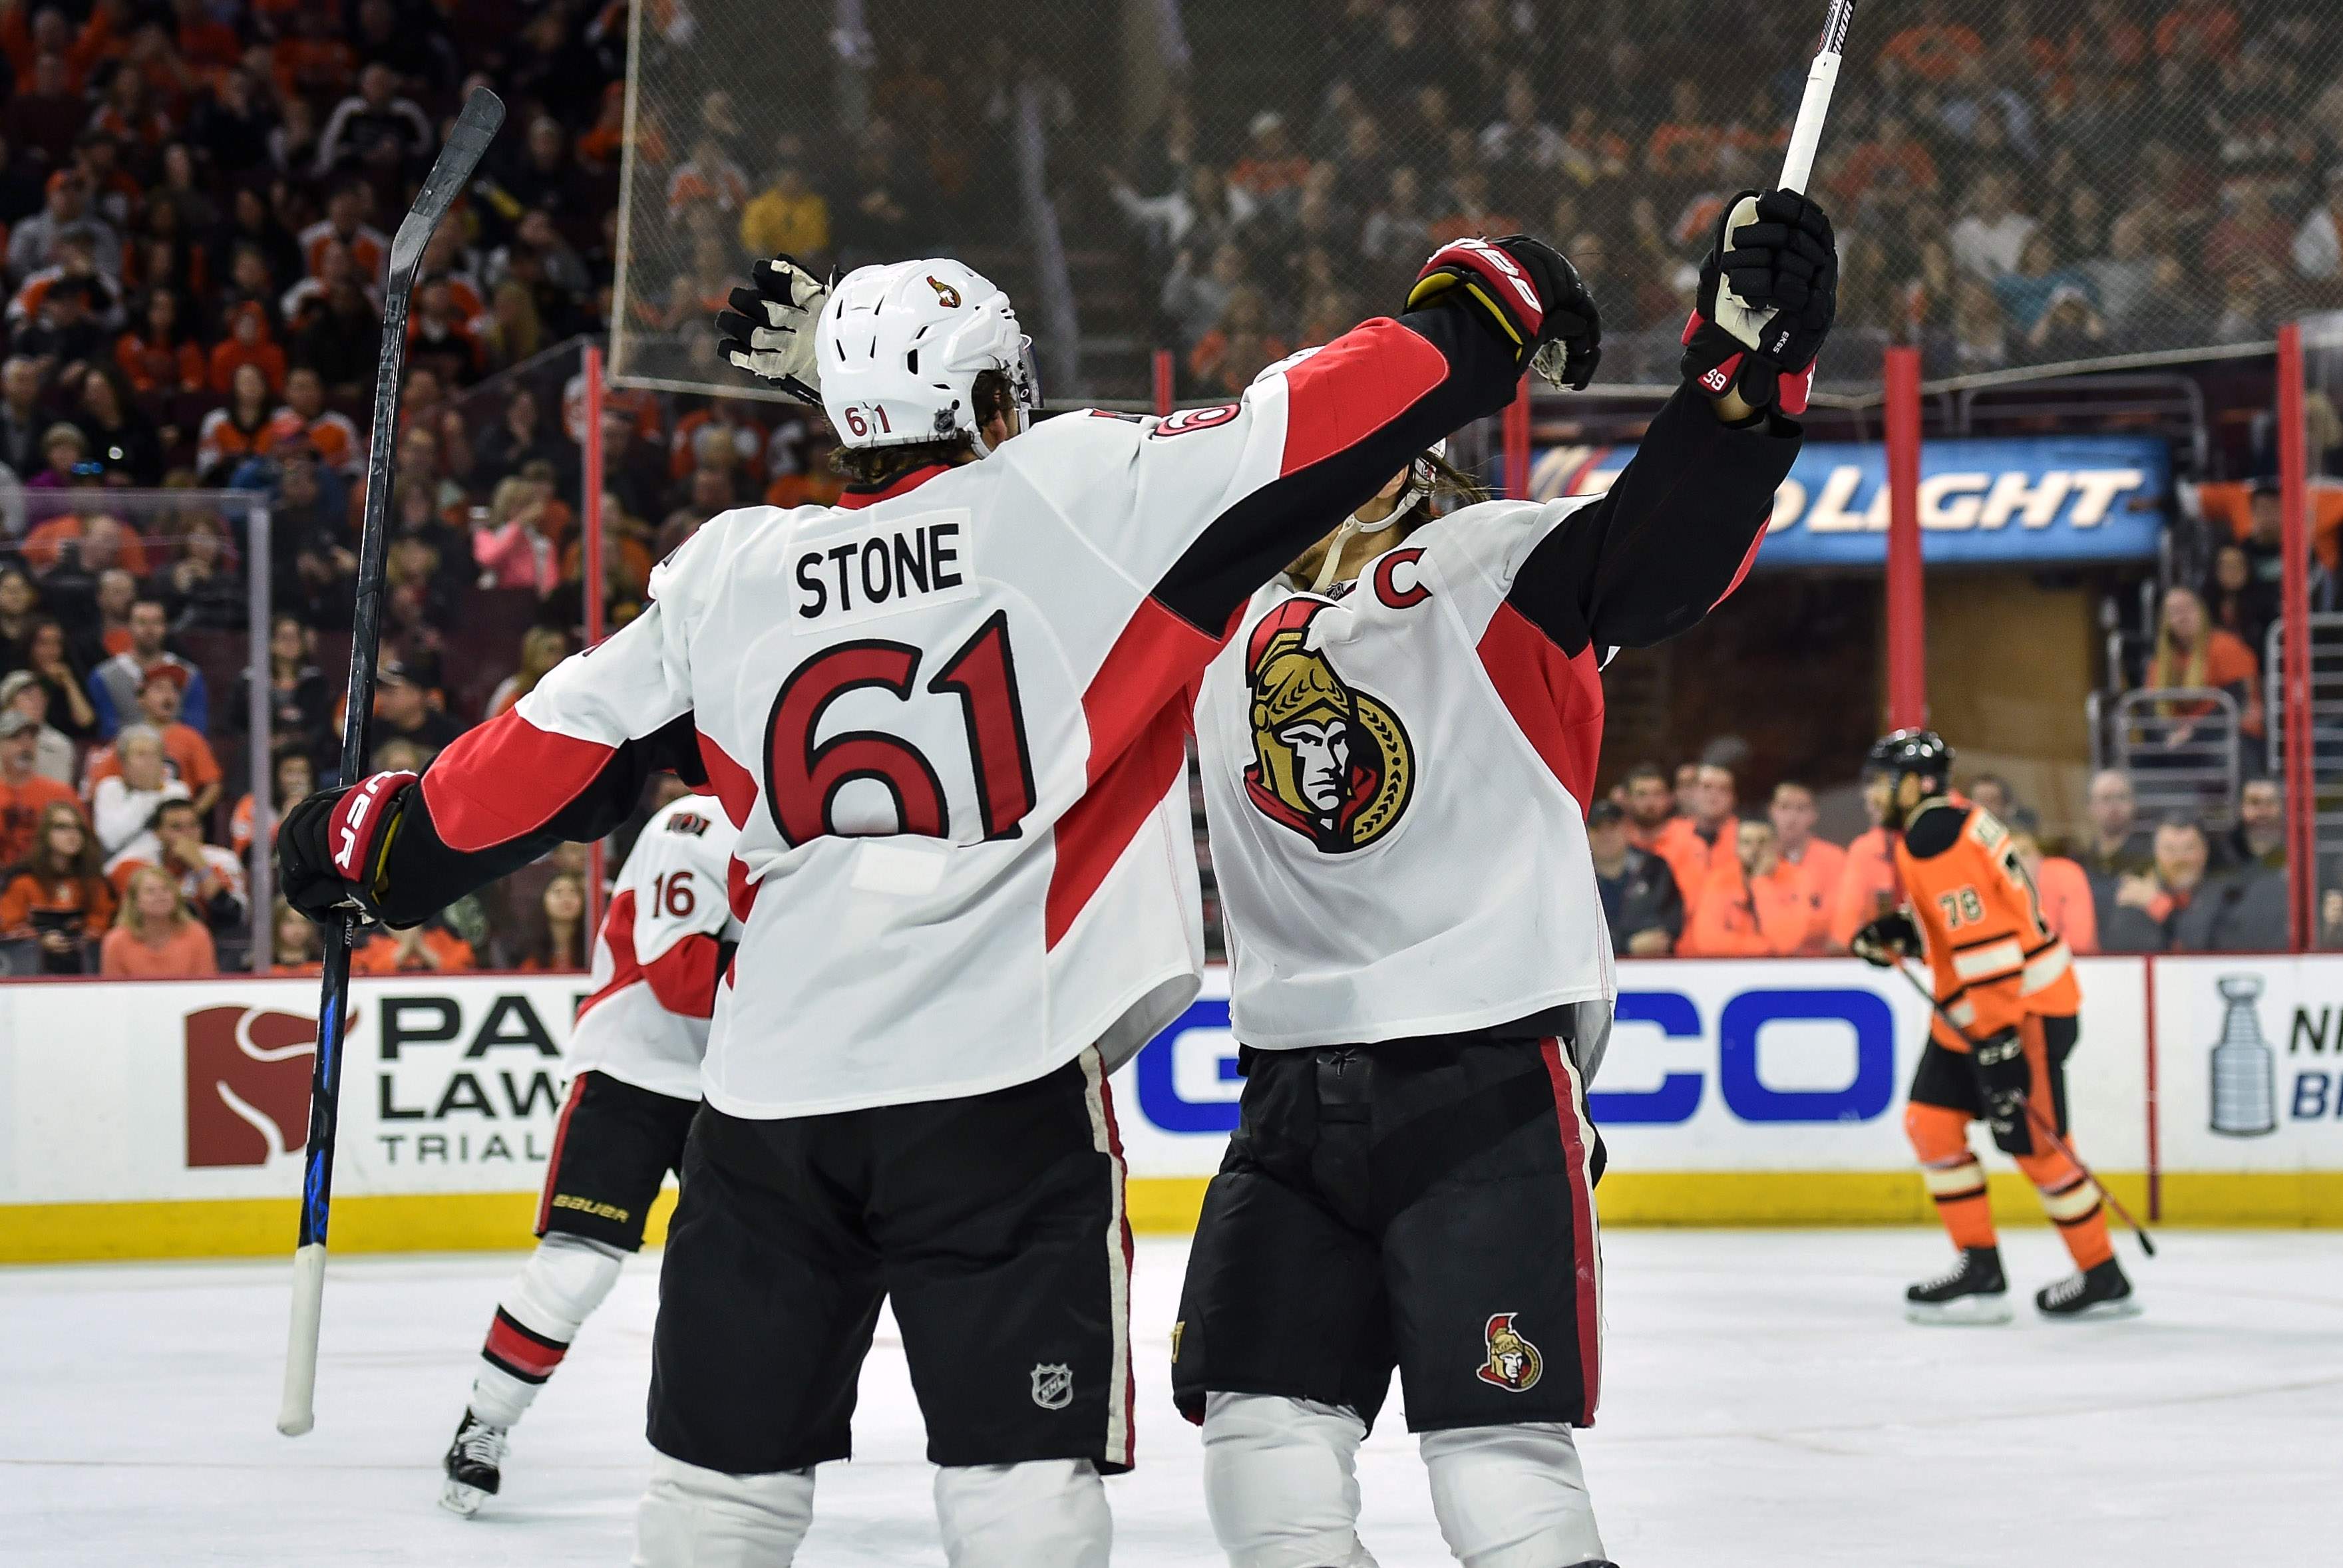 Put your hands up if you helped save the Sens' season!